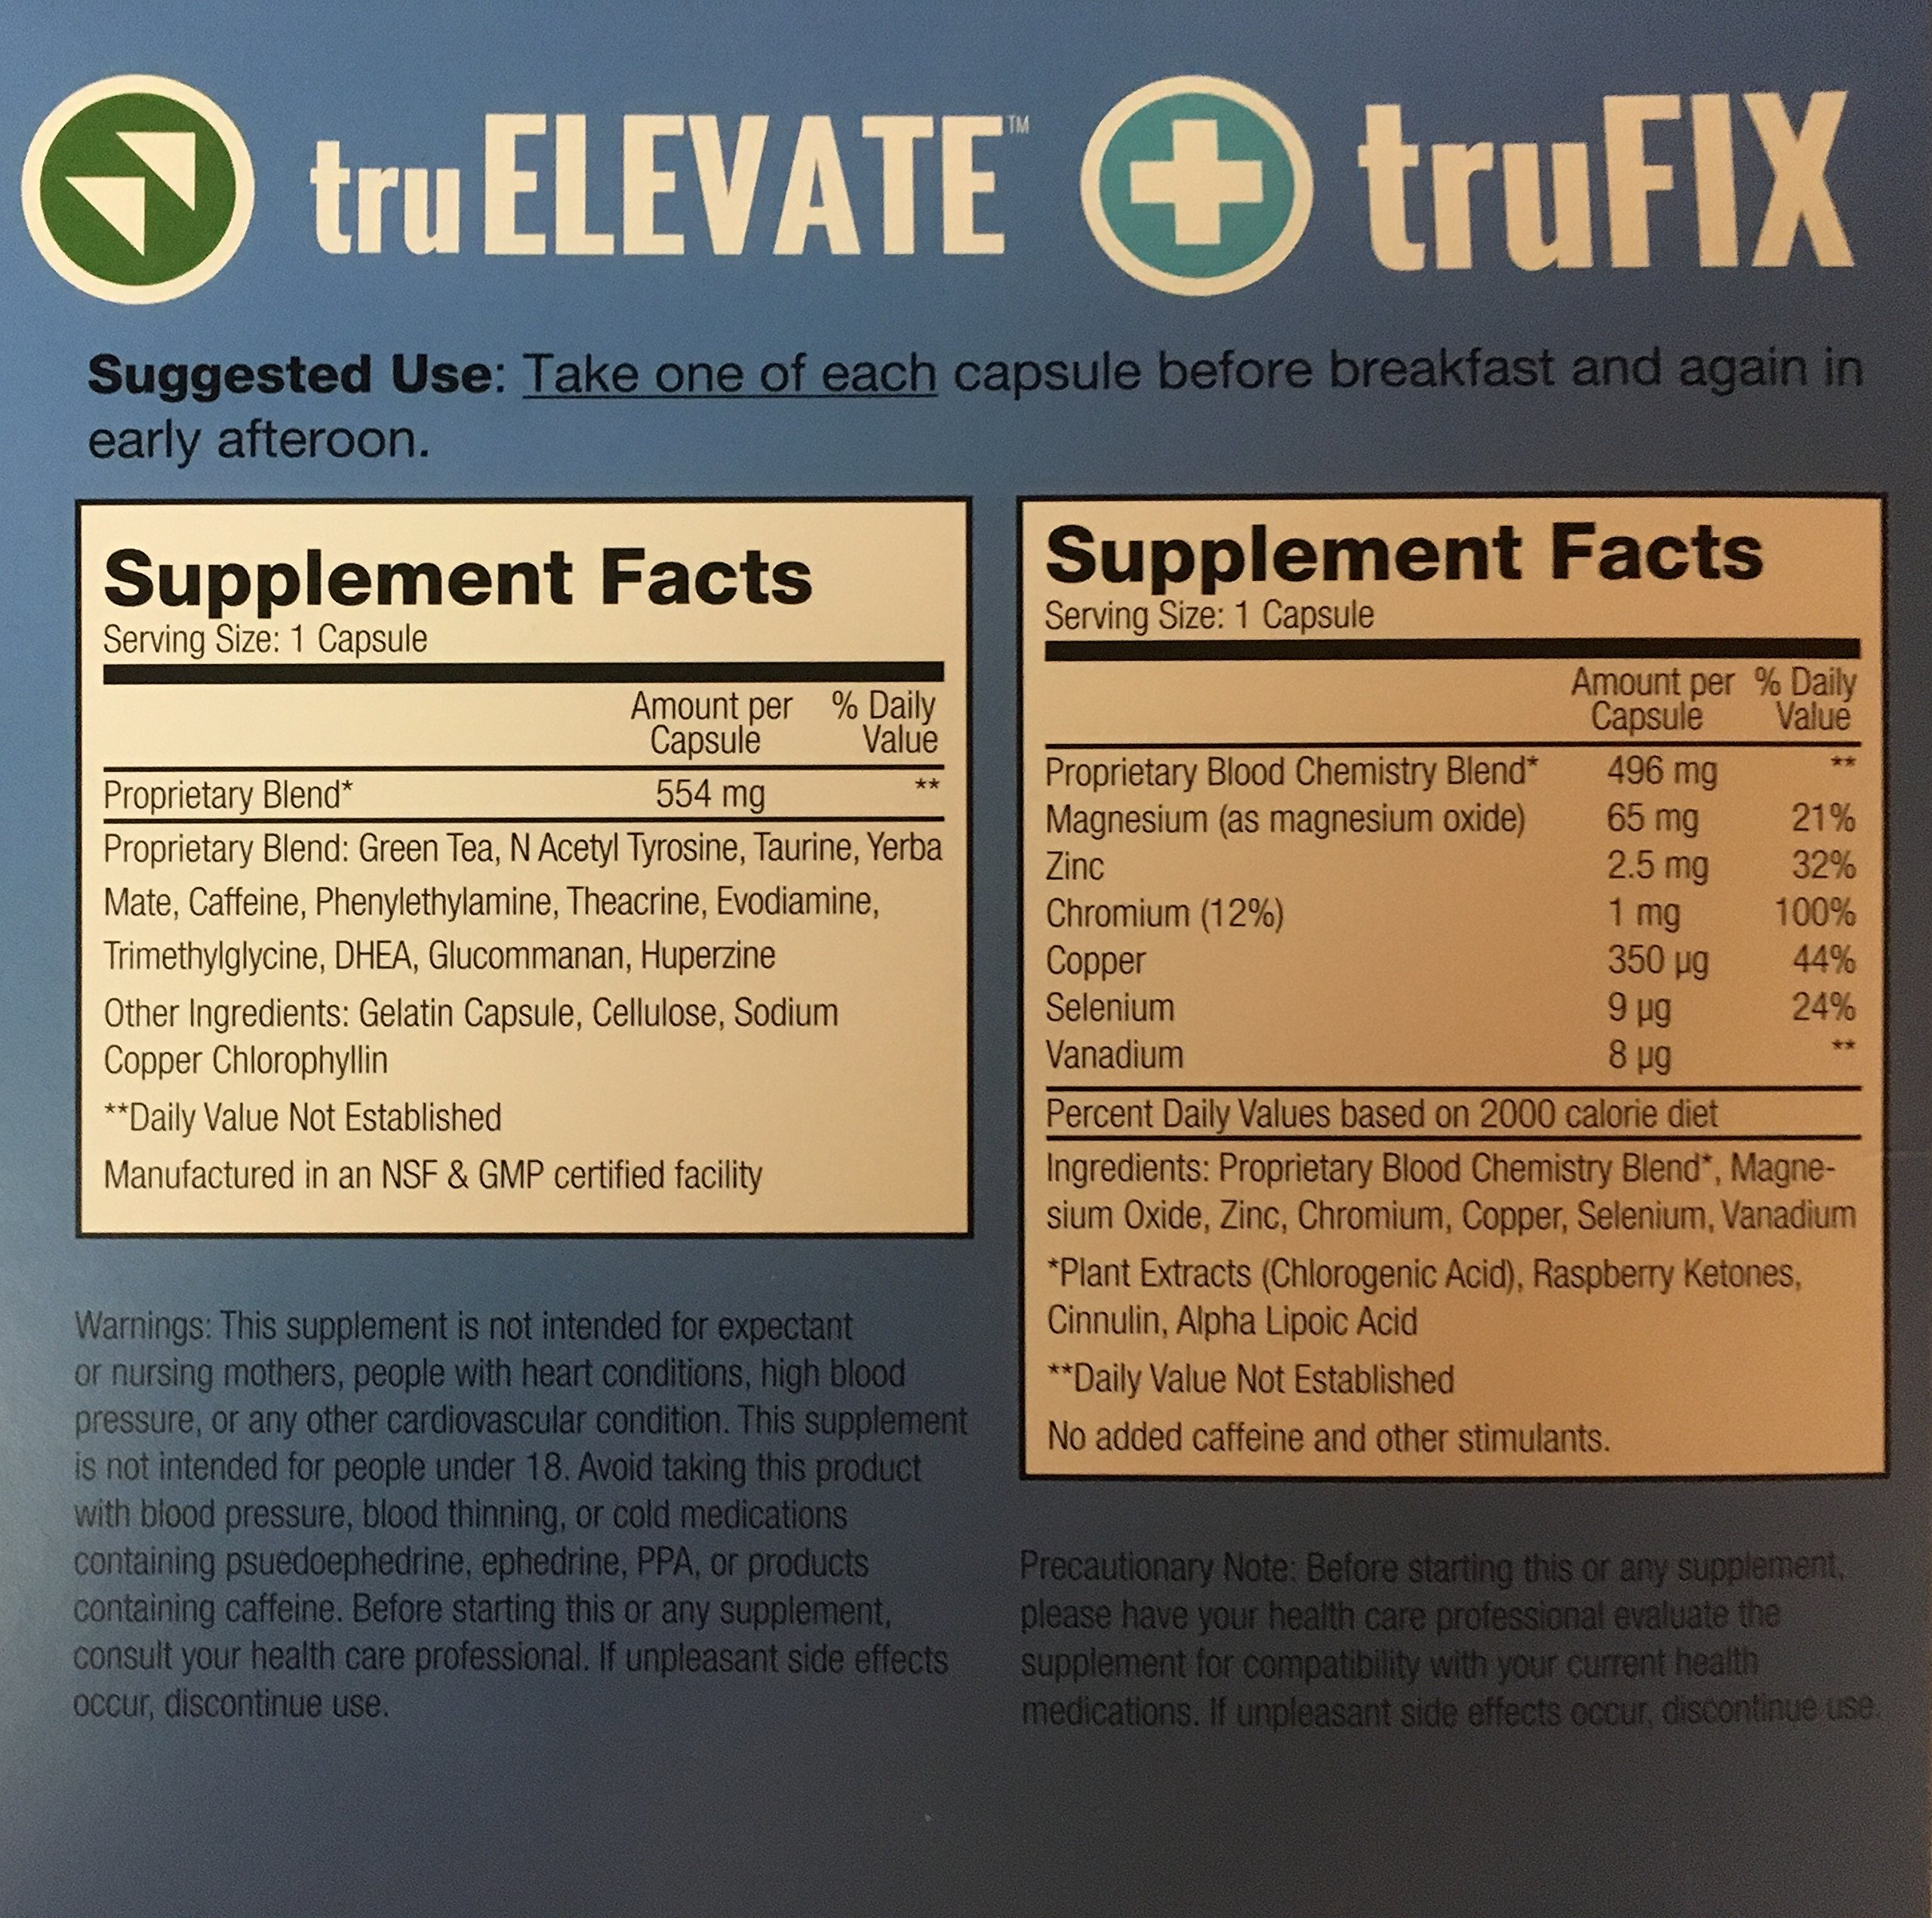 TRUVISION HEALTH - TRUFIX & TRUELEVATE- 30 DAY SUPPLY - (120) CAPSULES - REPLACES WEIGHT & ENERGY WITH FORMULA For More Energy by TruVision